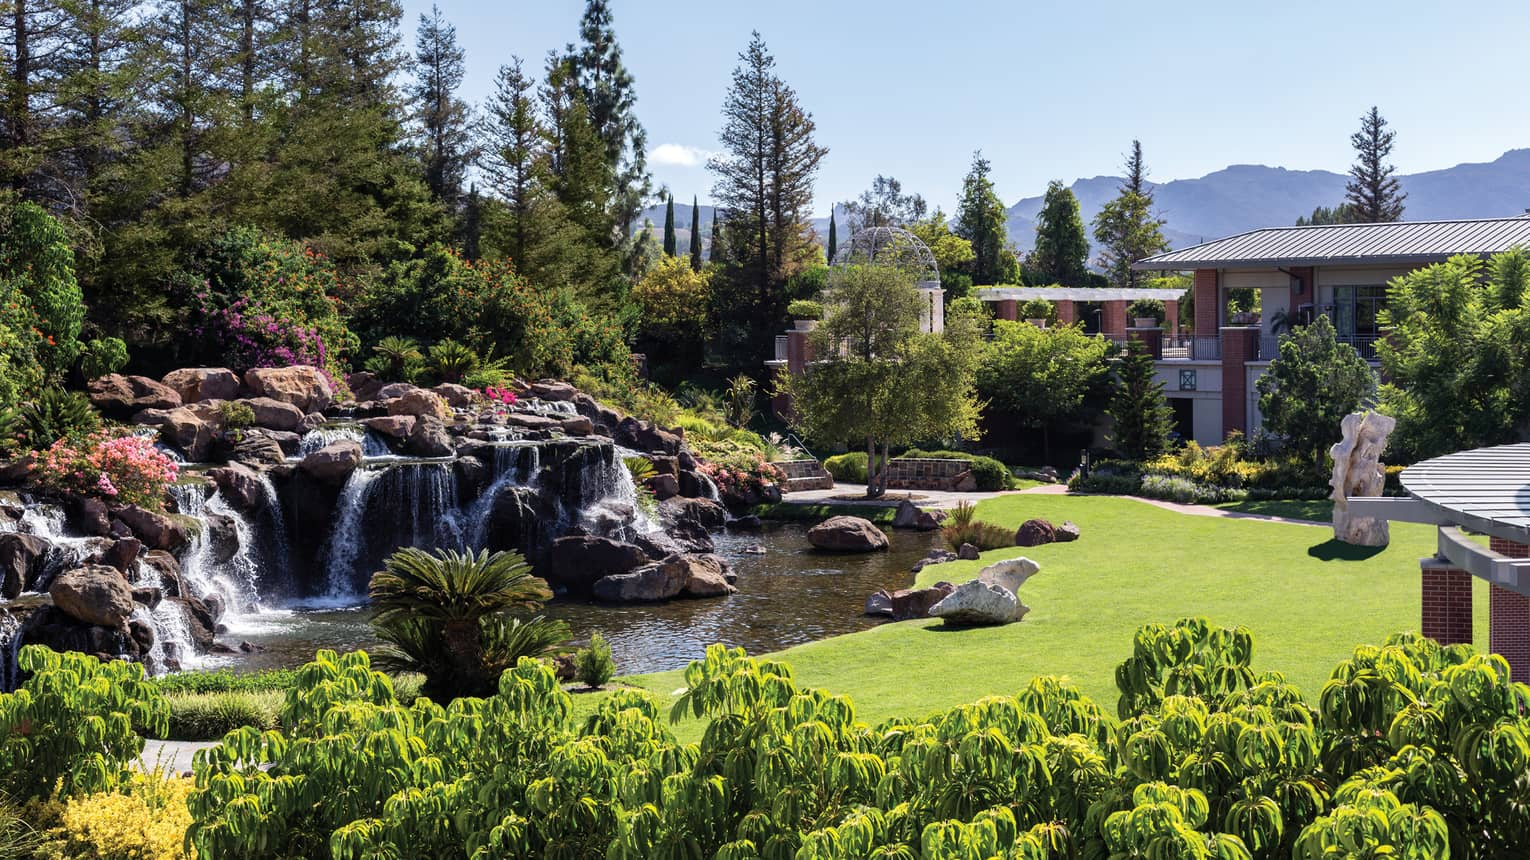 Waterfalls over rocks, boulders in garden at Four Seasons Hotel Westlake Village